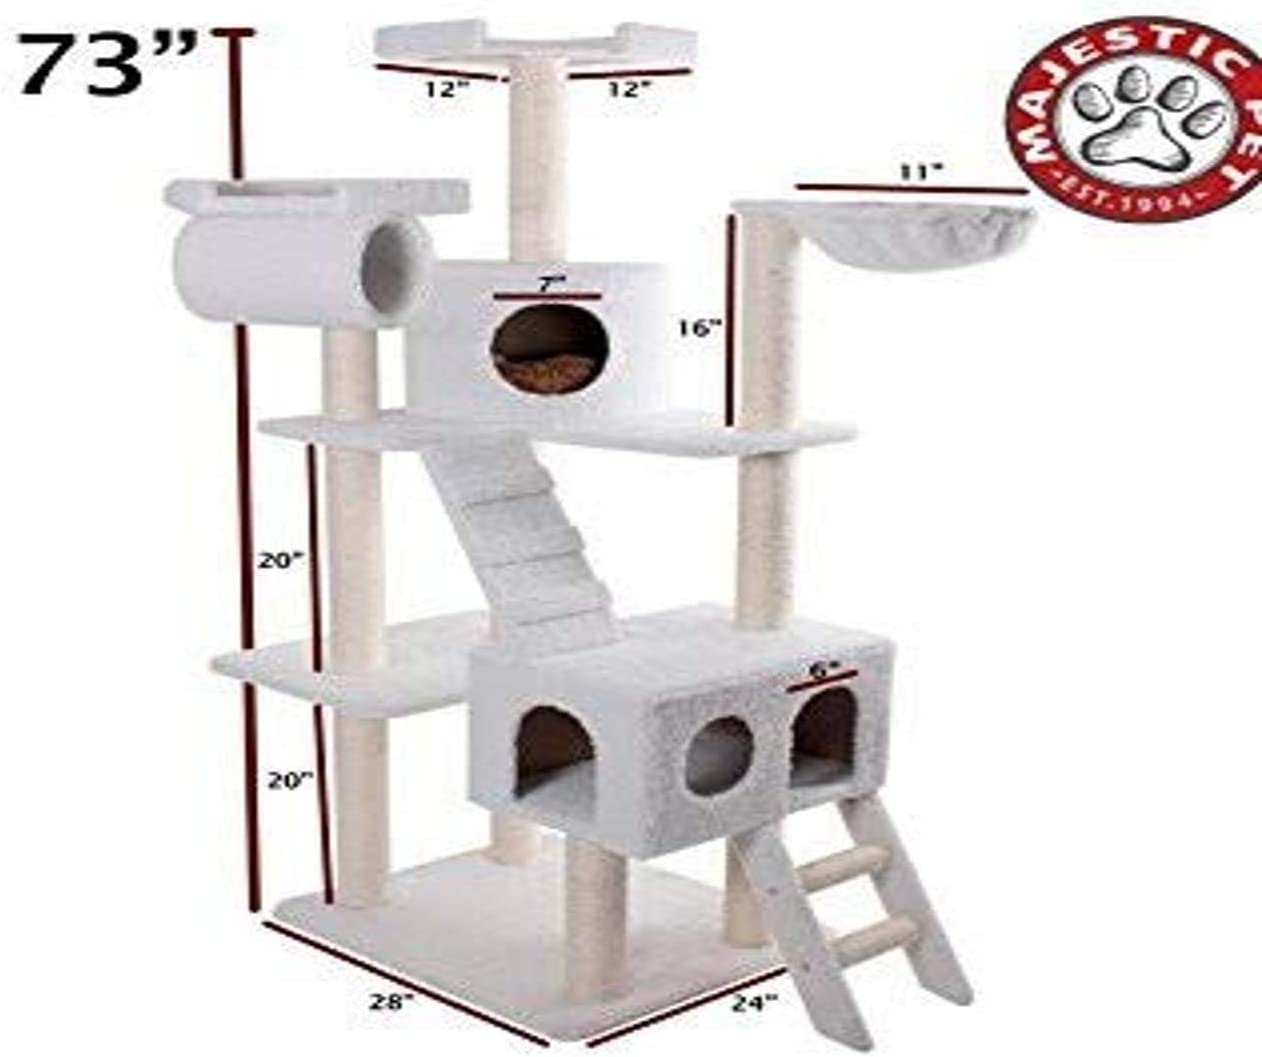 B000M3YBLO Majestic Pet Products 73 inch Beige Casita Cat Furniture Condo House Scratcher Multi Level Pet Activity Tree 61AnkgoKNcL